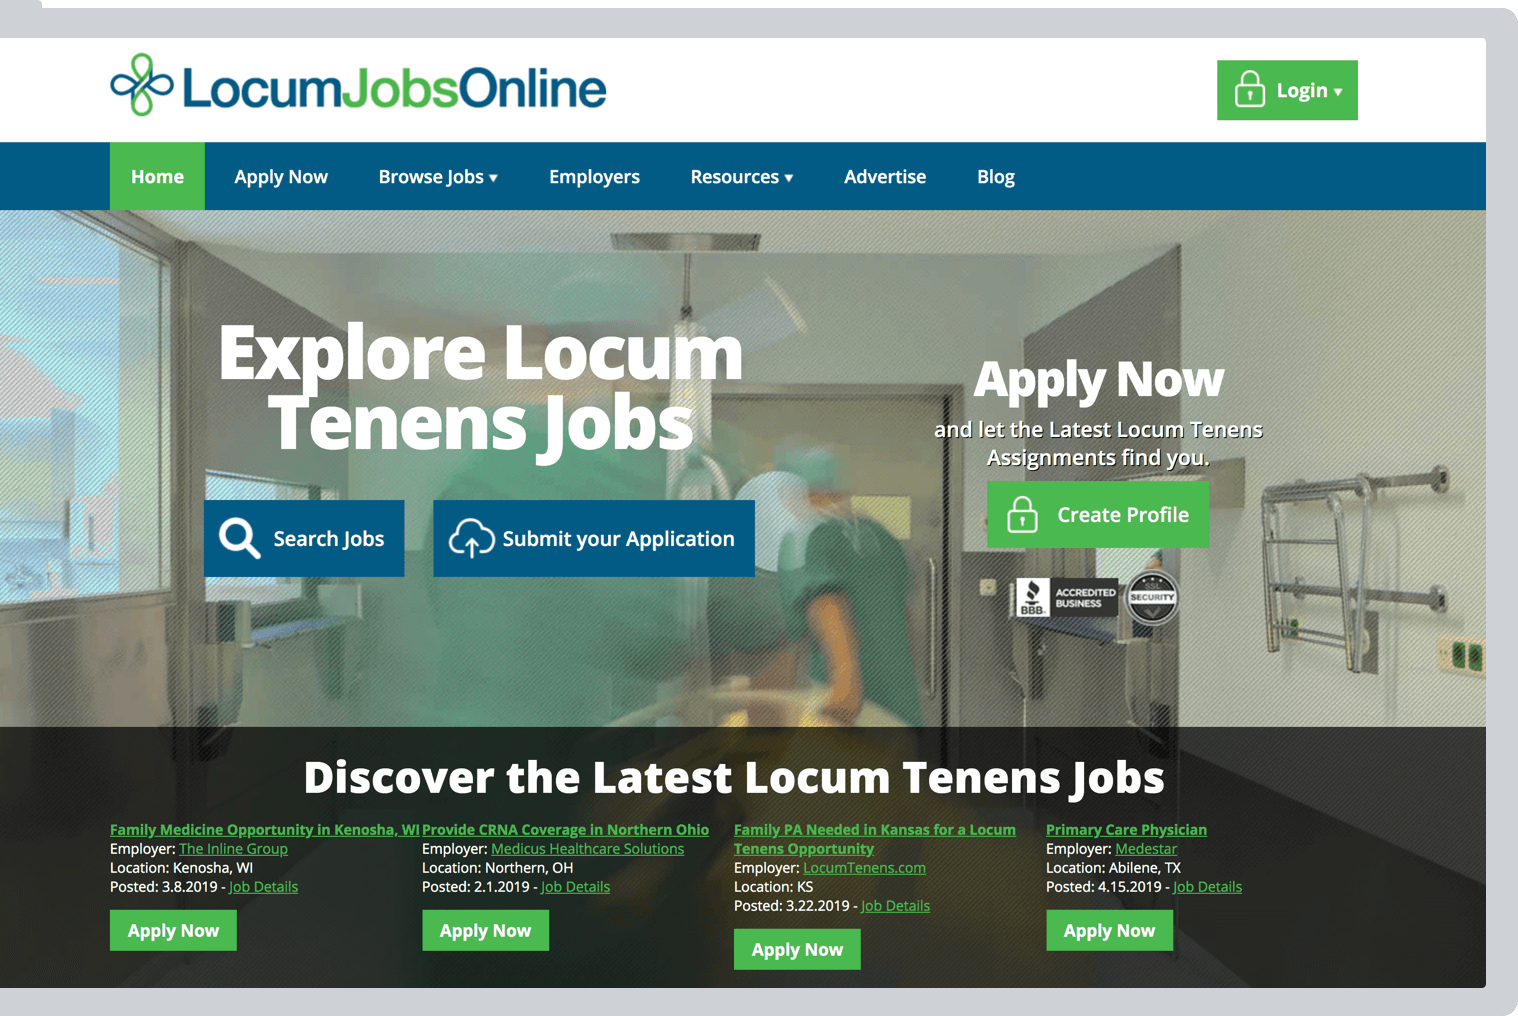 Locum Jobs Online website preview